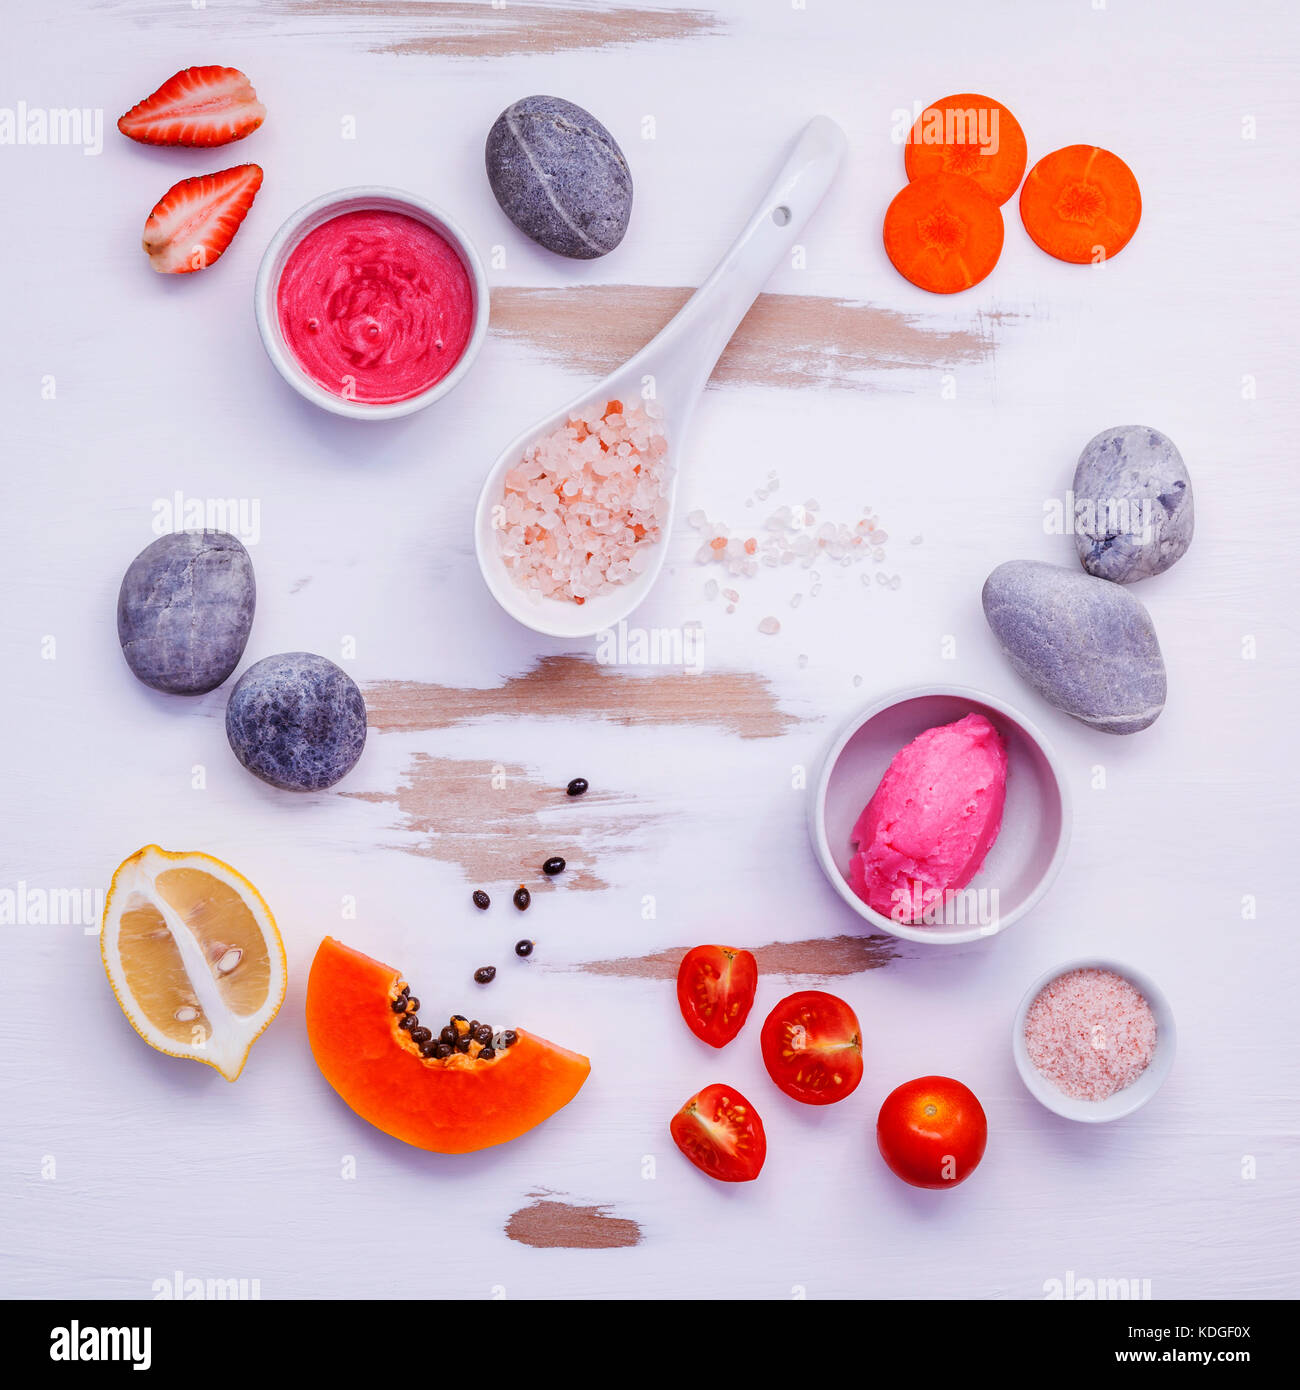 Homemade skin care and body scrubs with red natural ingredients strawberry ,tomato ,himalayan salt, papaya, carrot - Stock Image